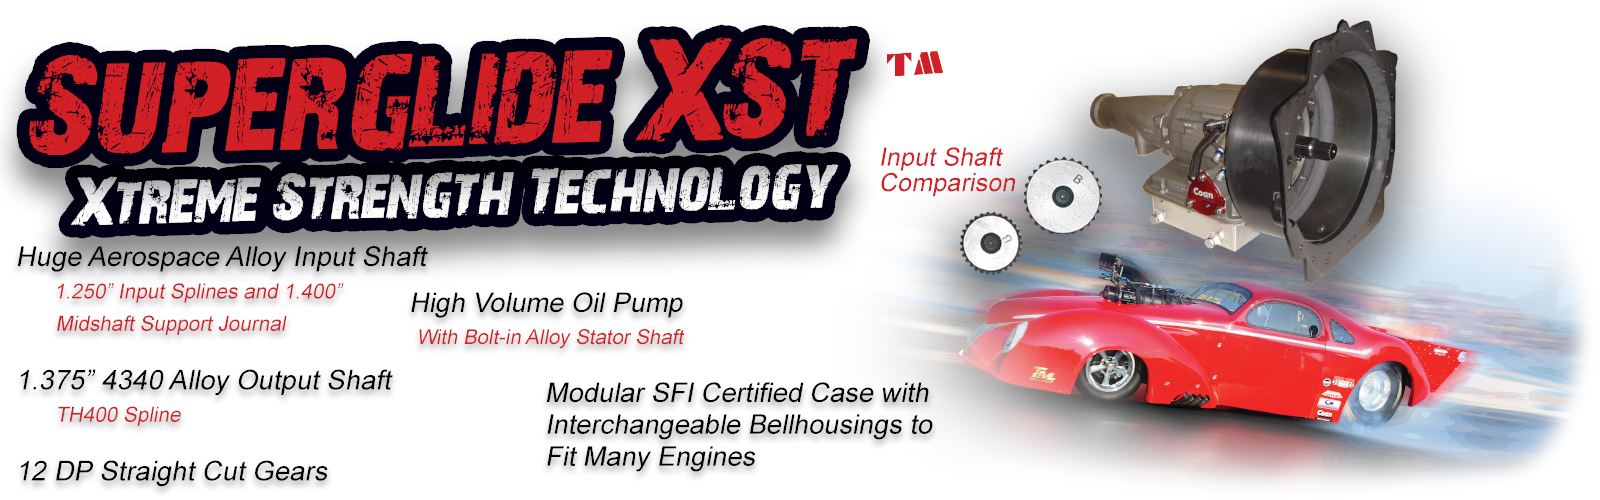 Superglide XST